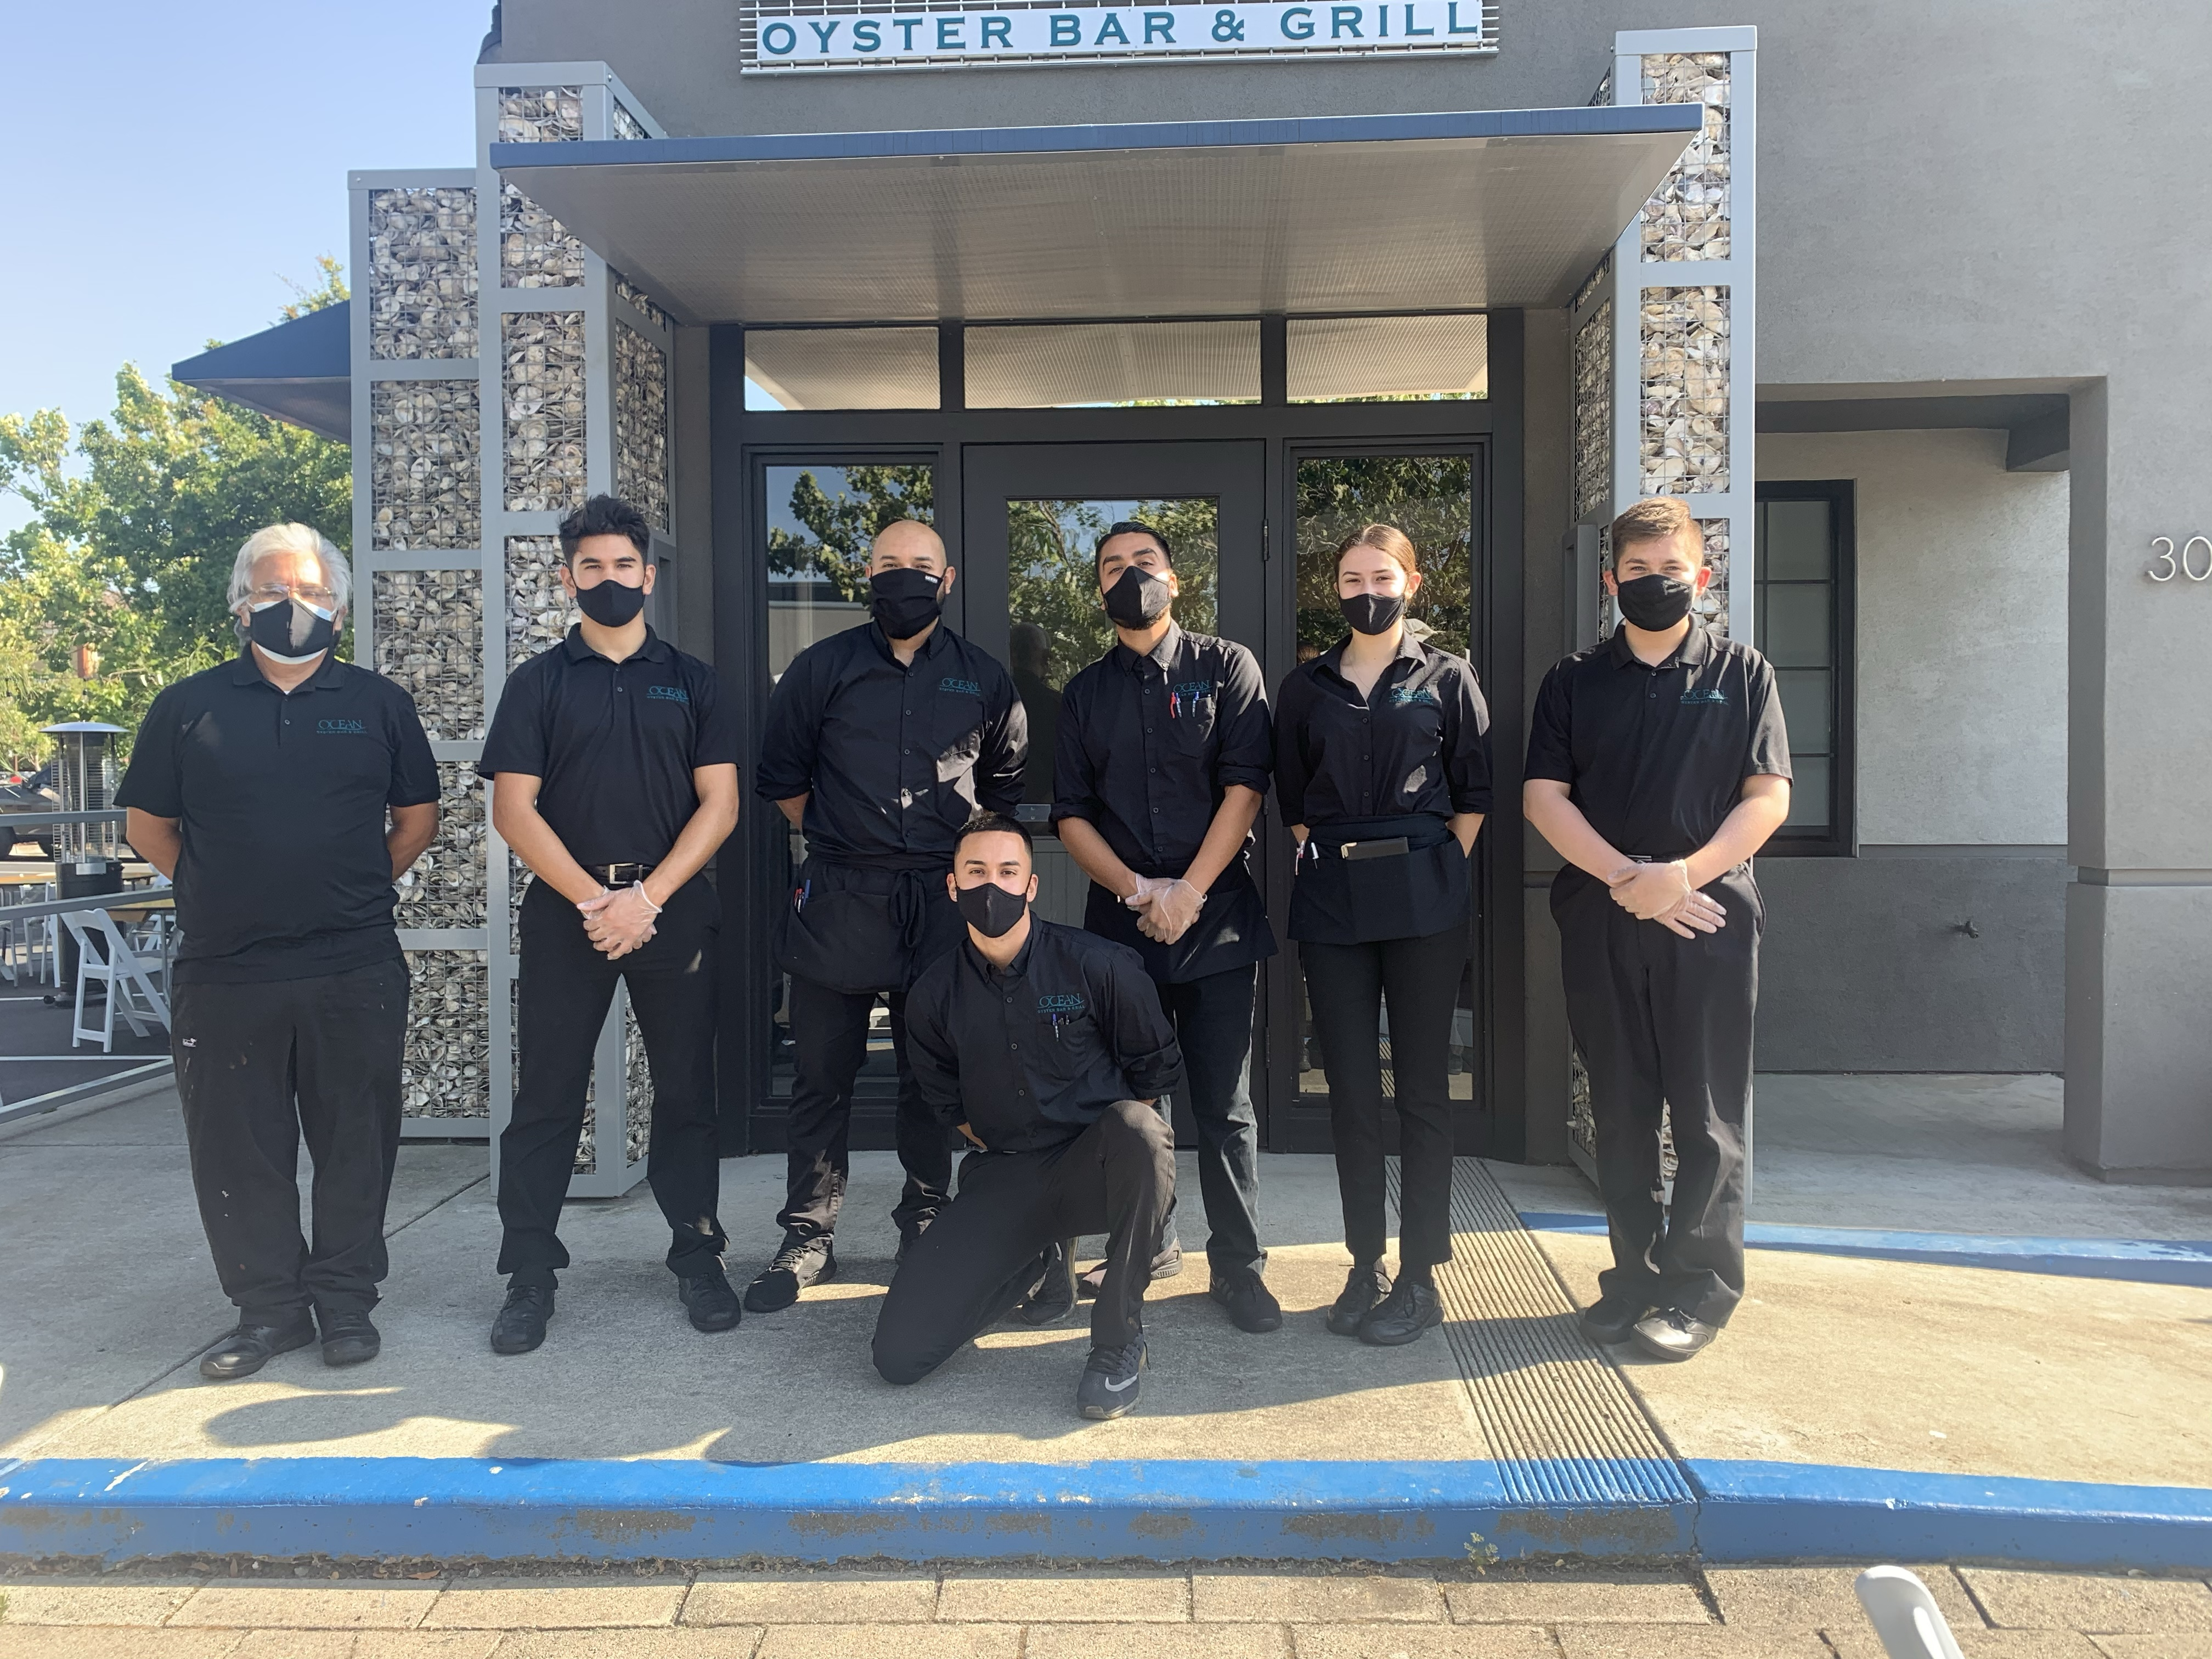 Ocean Oyster Bar and Grill servers in masks